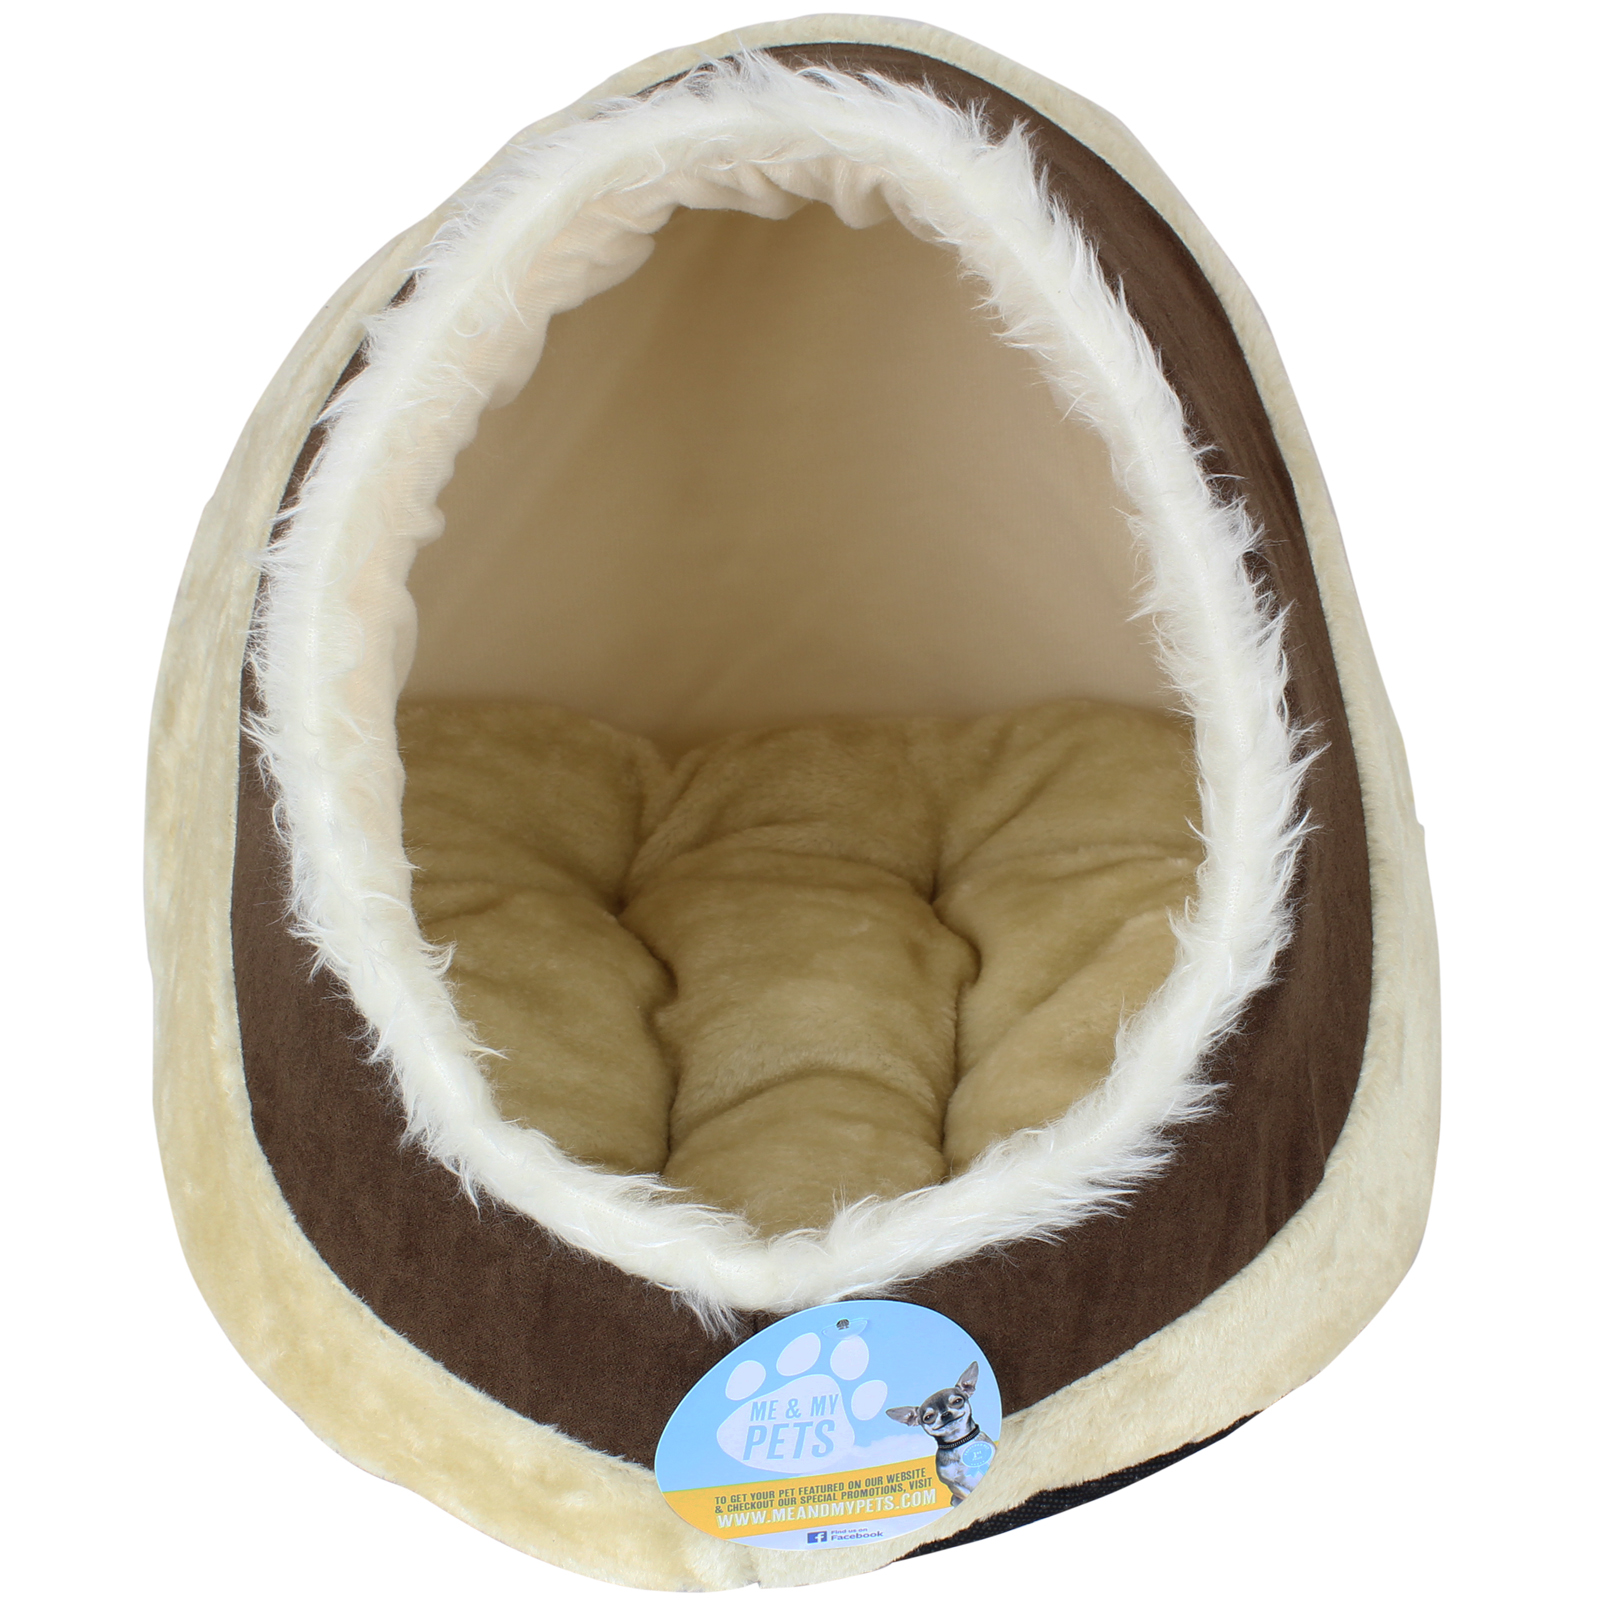 Me Amp My Soft Plush Igloo Pet Bed Cat Kitten Dog Puppy Warm